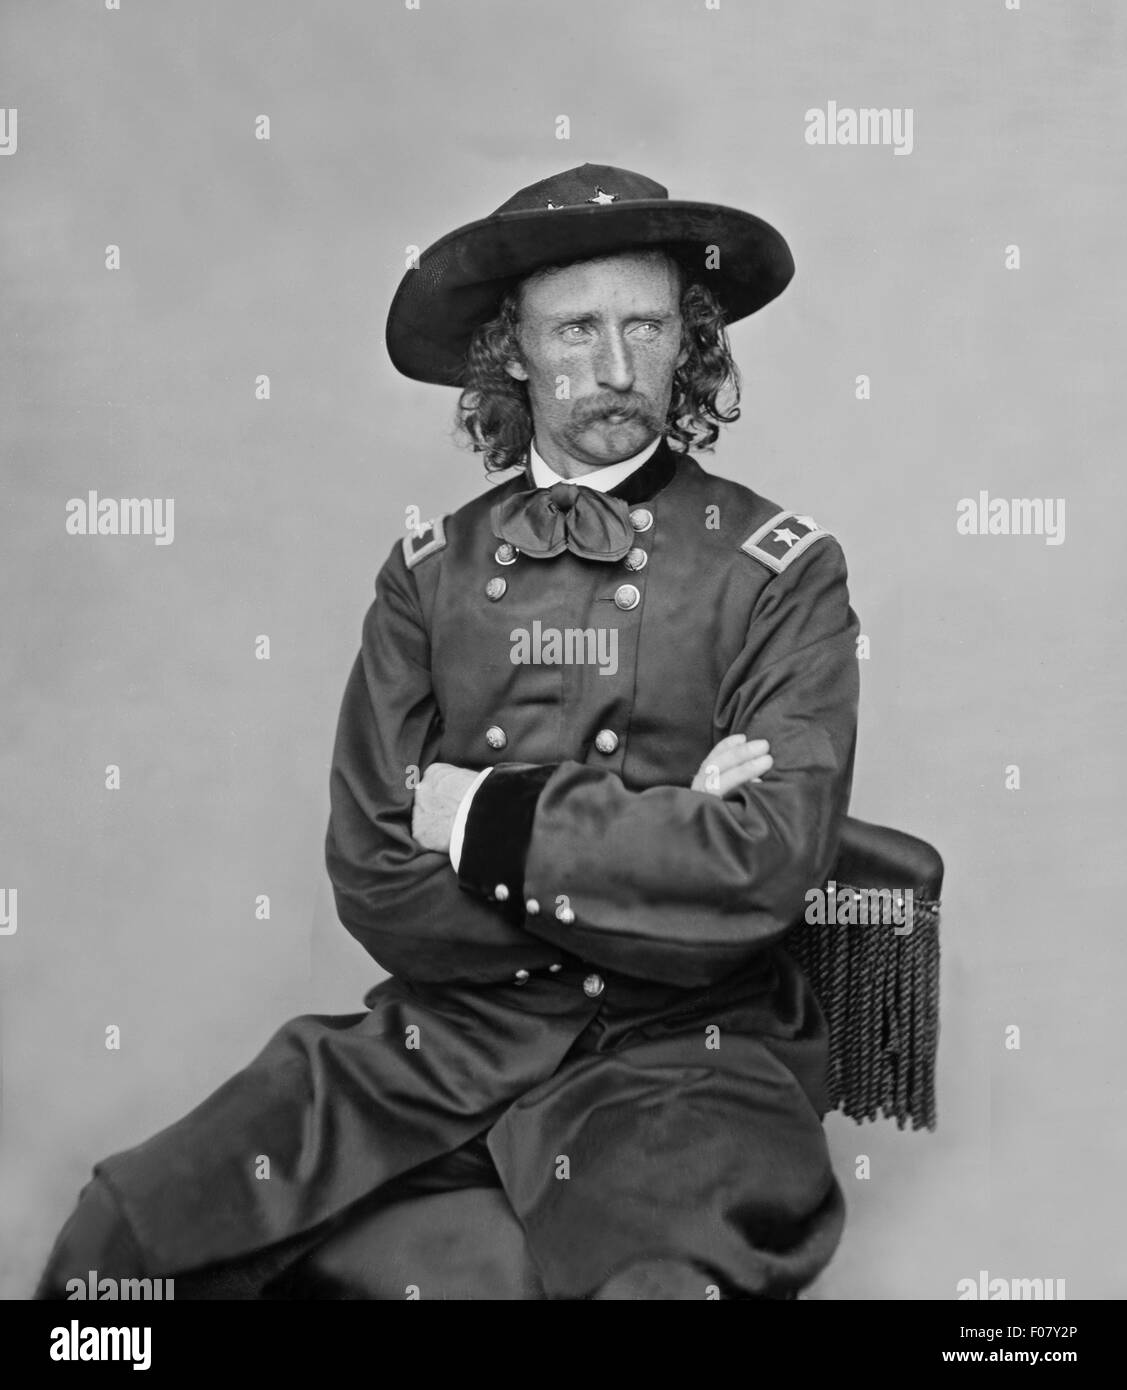 Brevet Major General George Armstrong Custer in field uniform circa 1860 to 1865. Unattributed photograph. - Stock Image